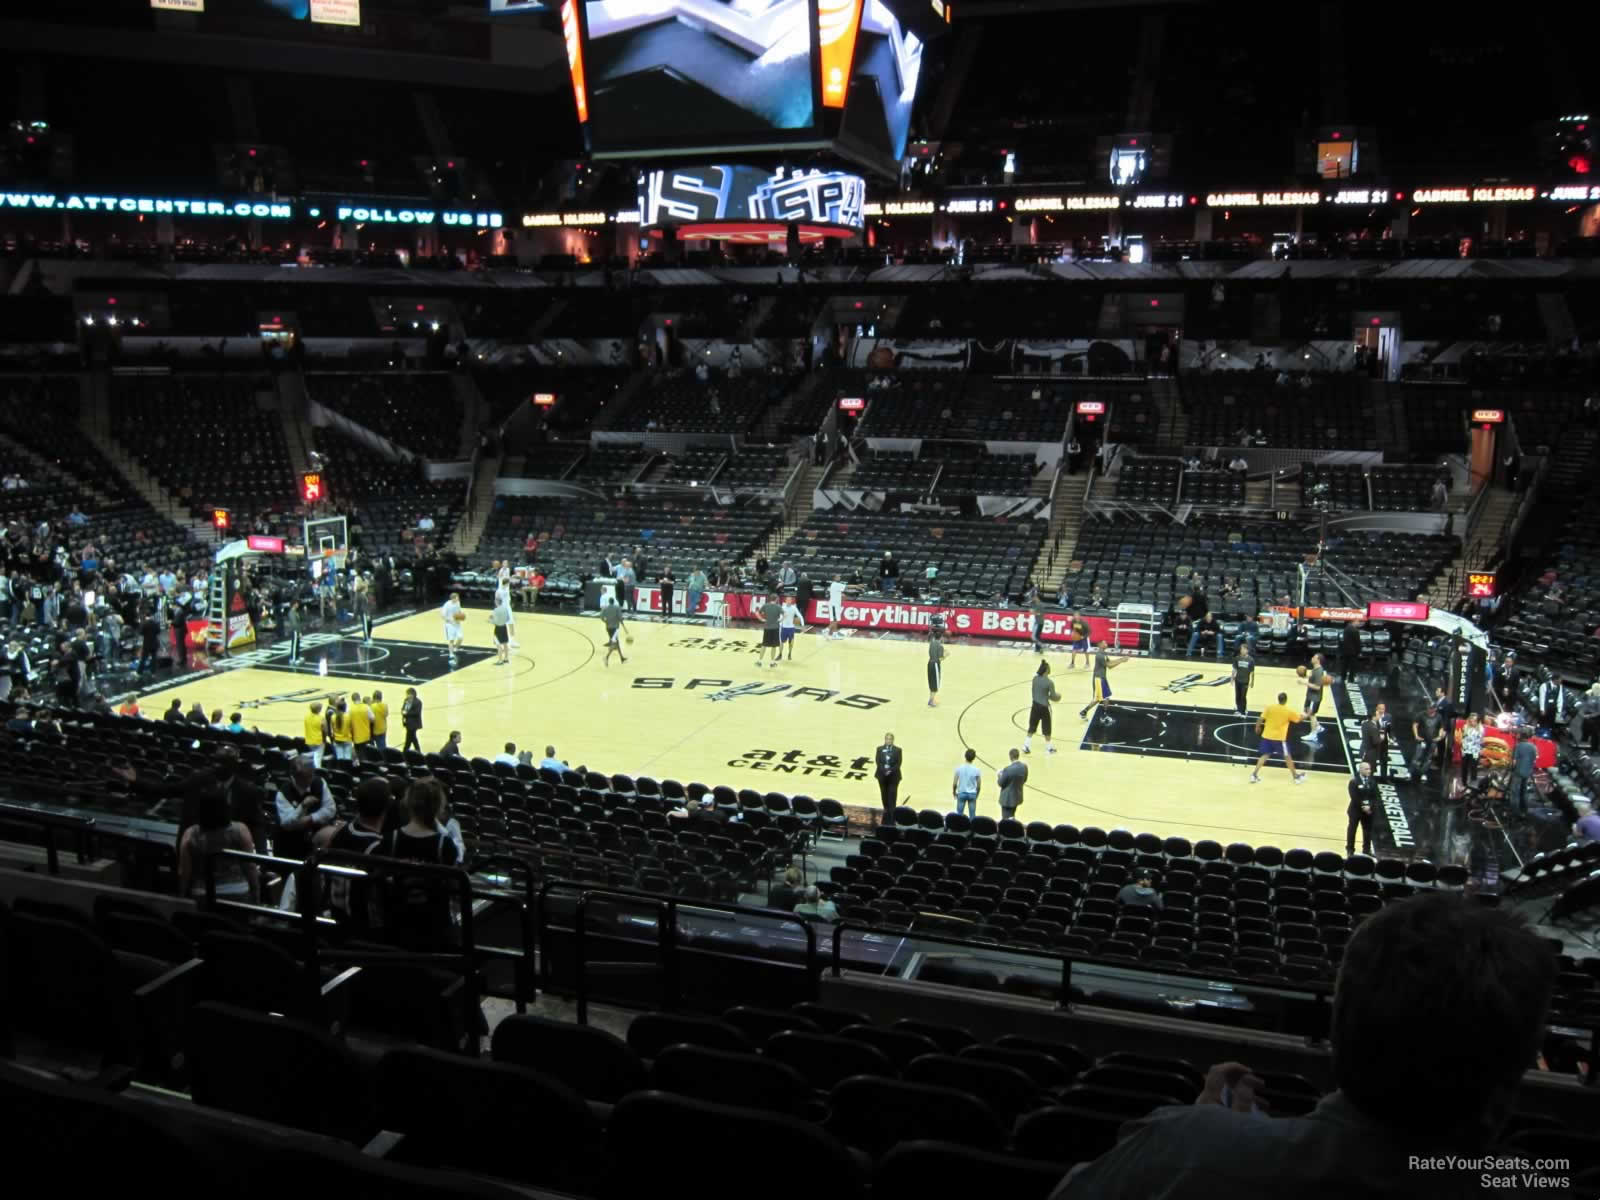 Seat View for AT&T Center Section 121, Row 27, Seat 11